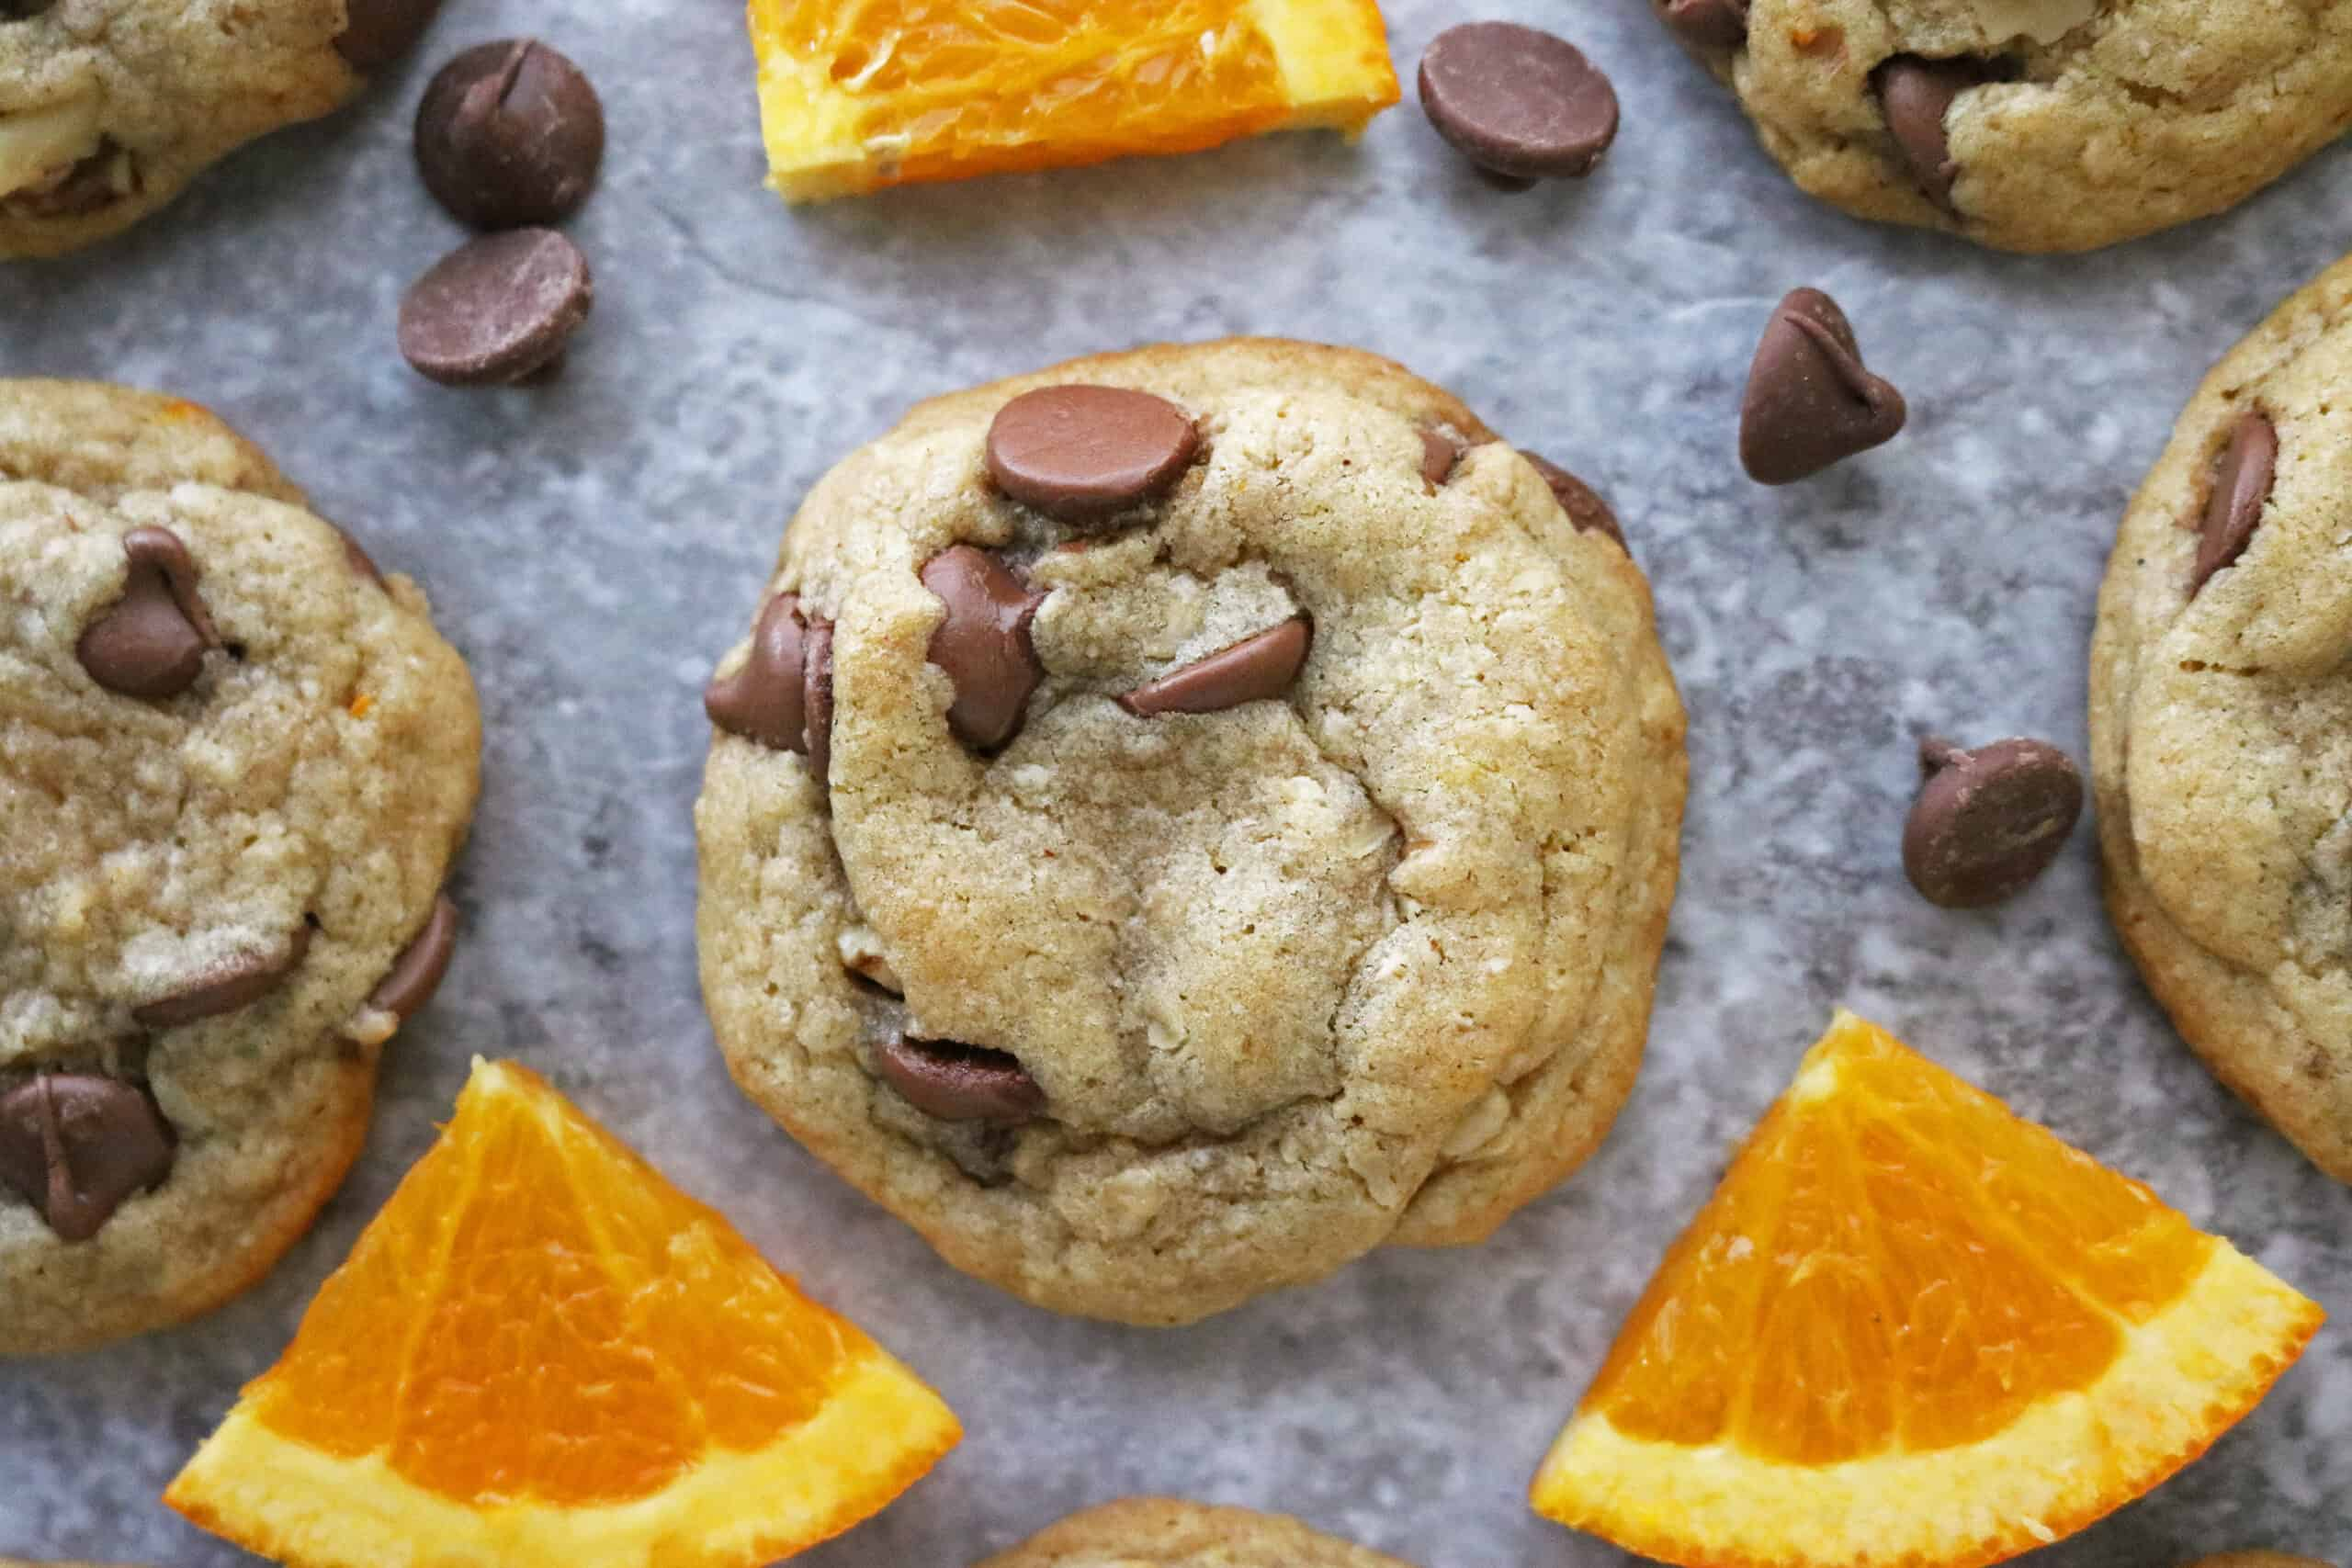 Easy and so delicious chocolate orange cookies ready to enjoy.